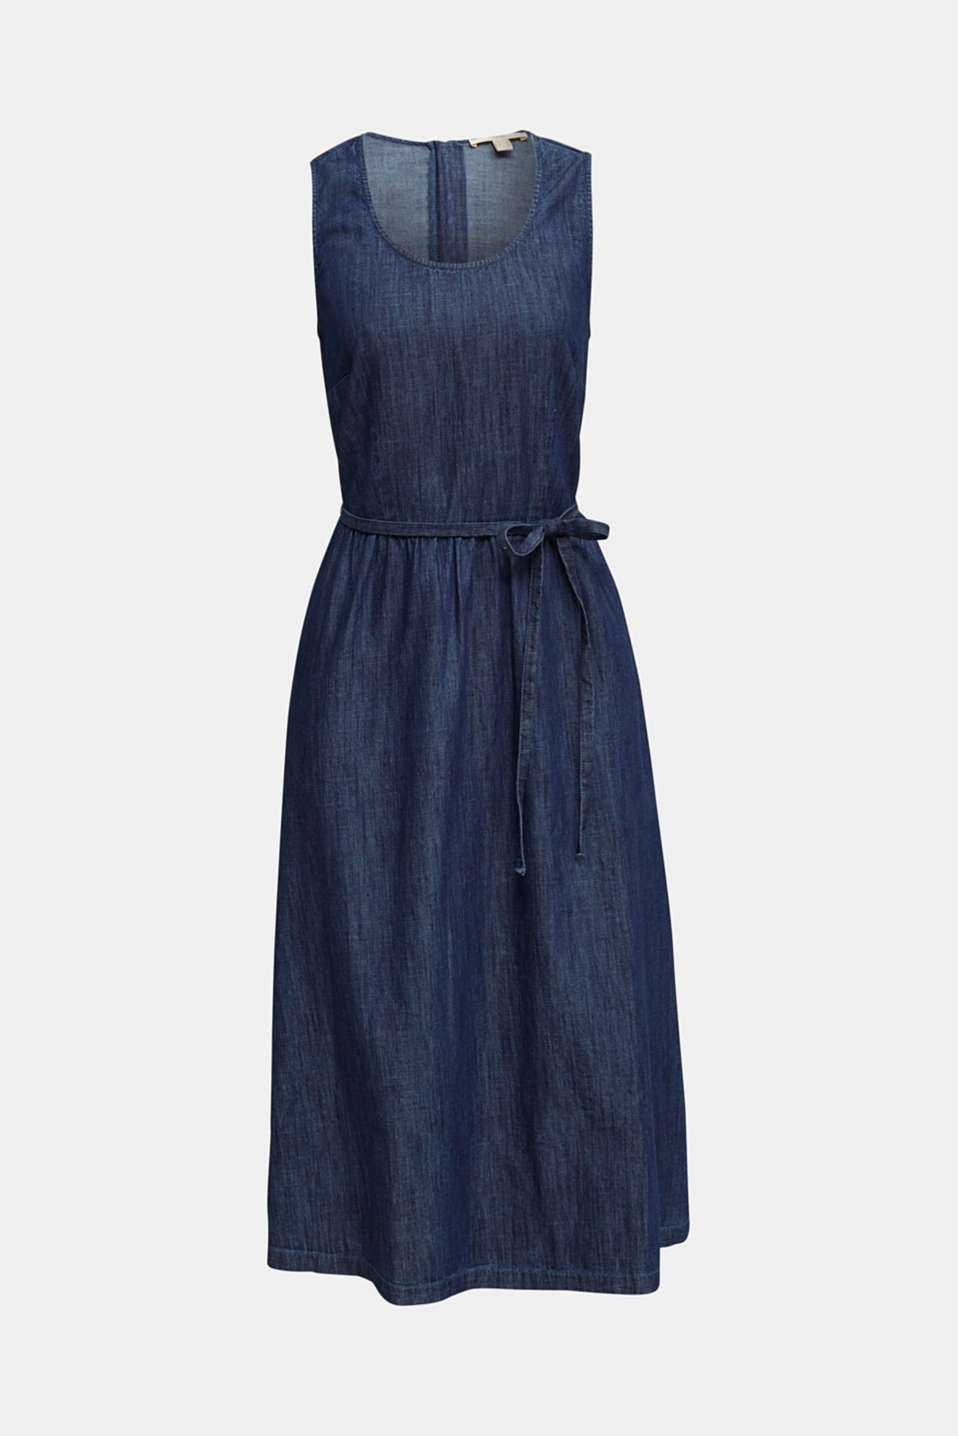 Denim dress with belt, 100% cotton, BLUE RINSE, detail image number 6